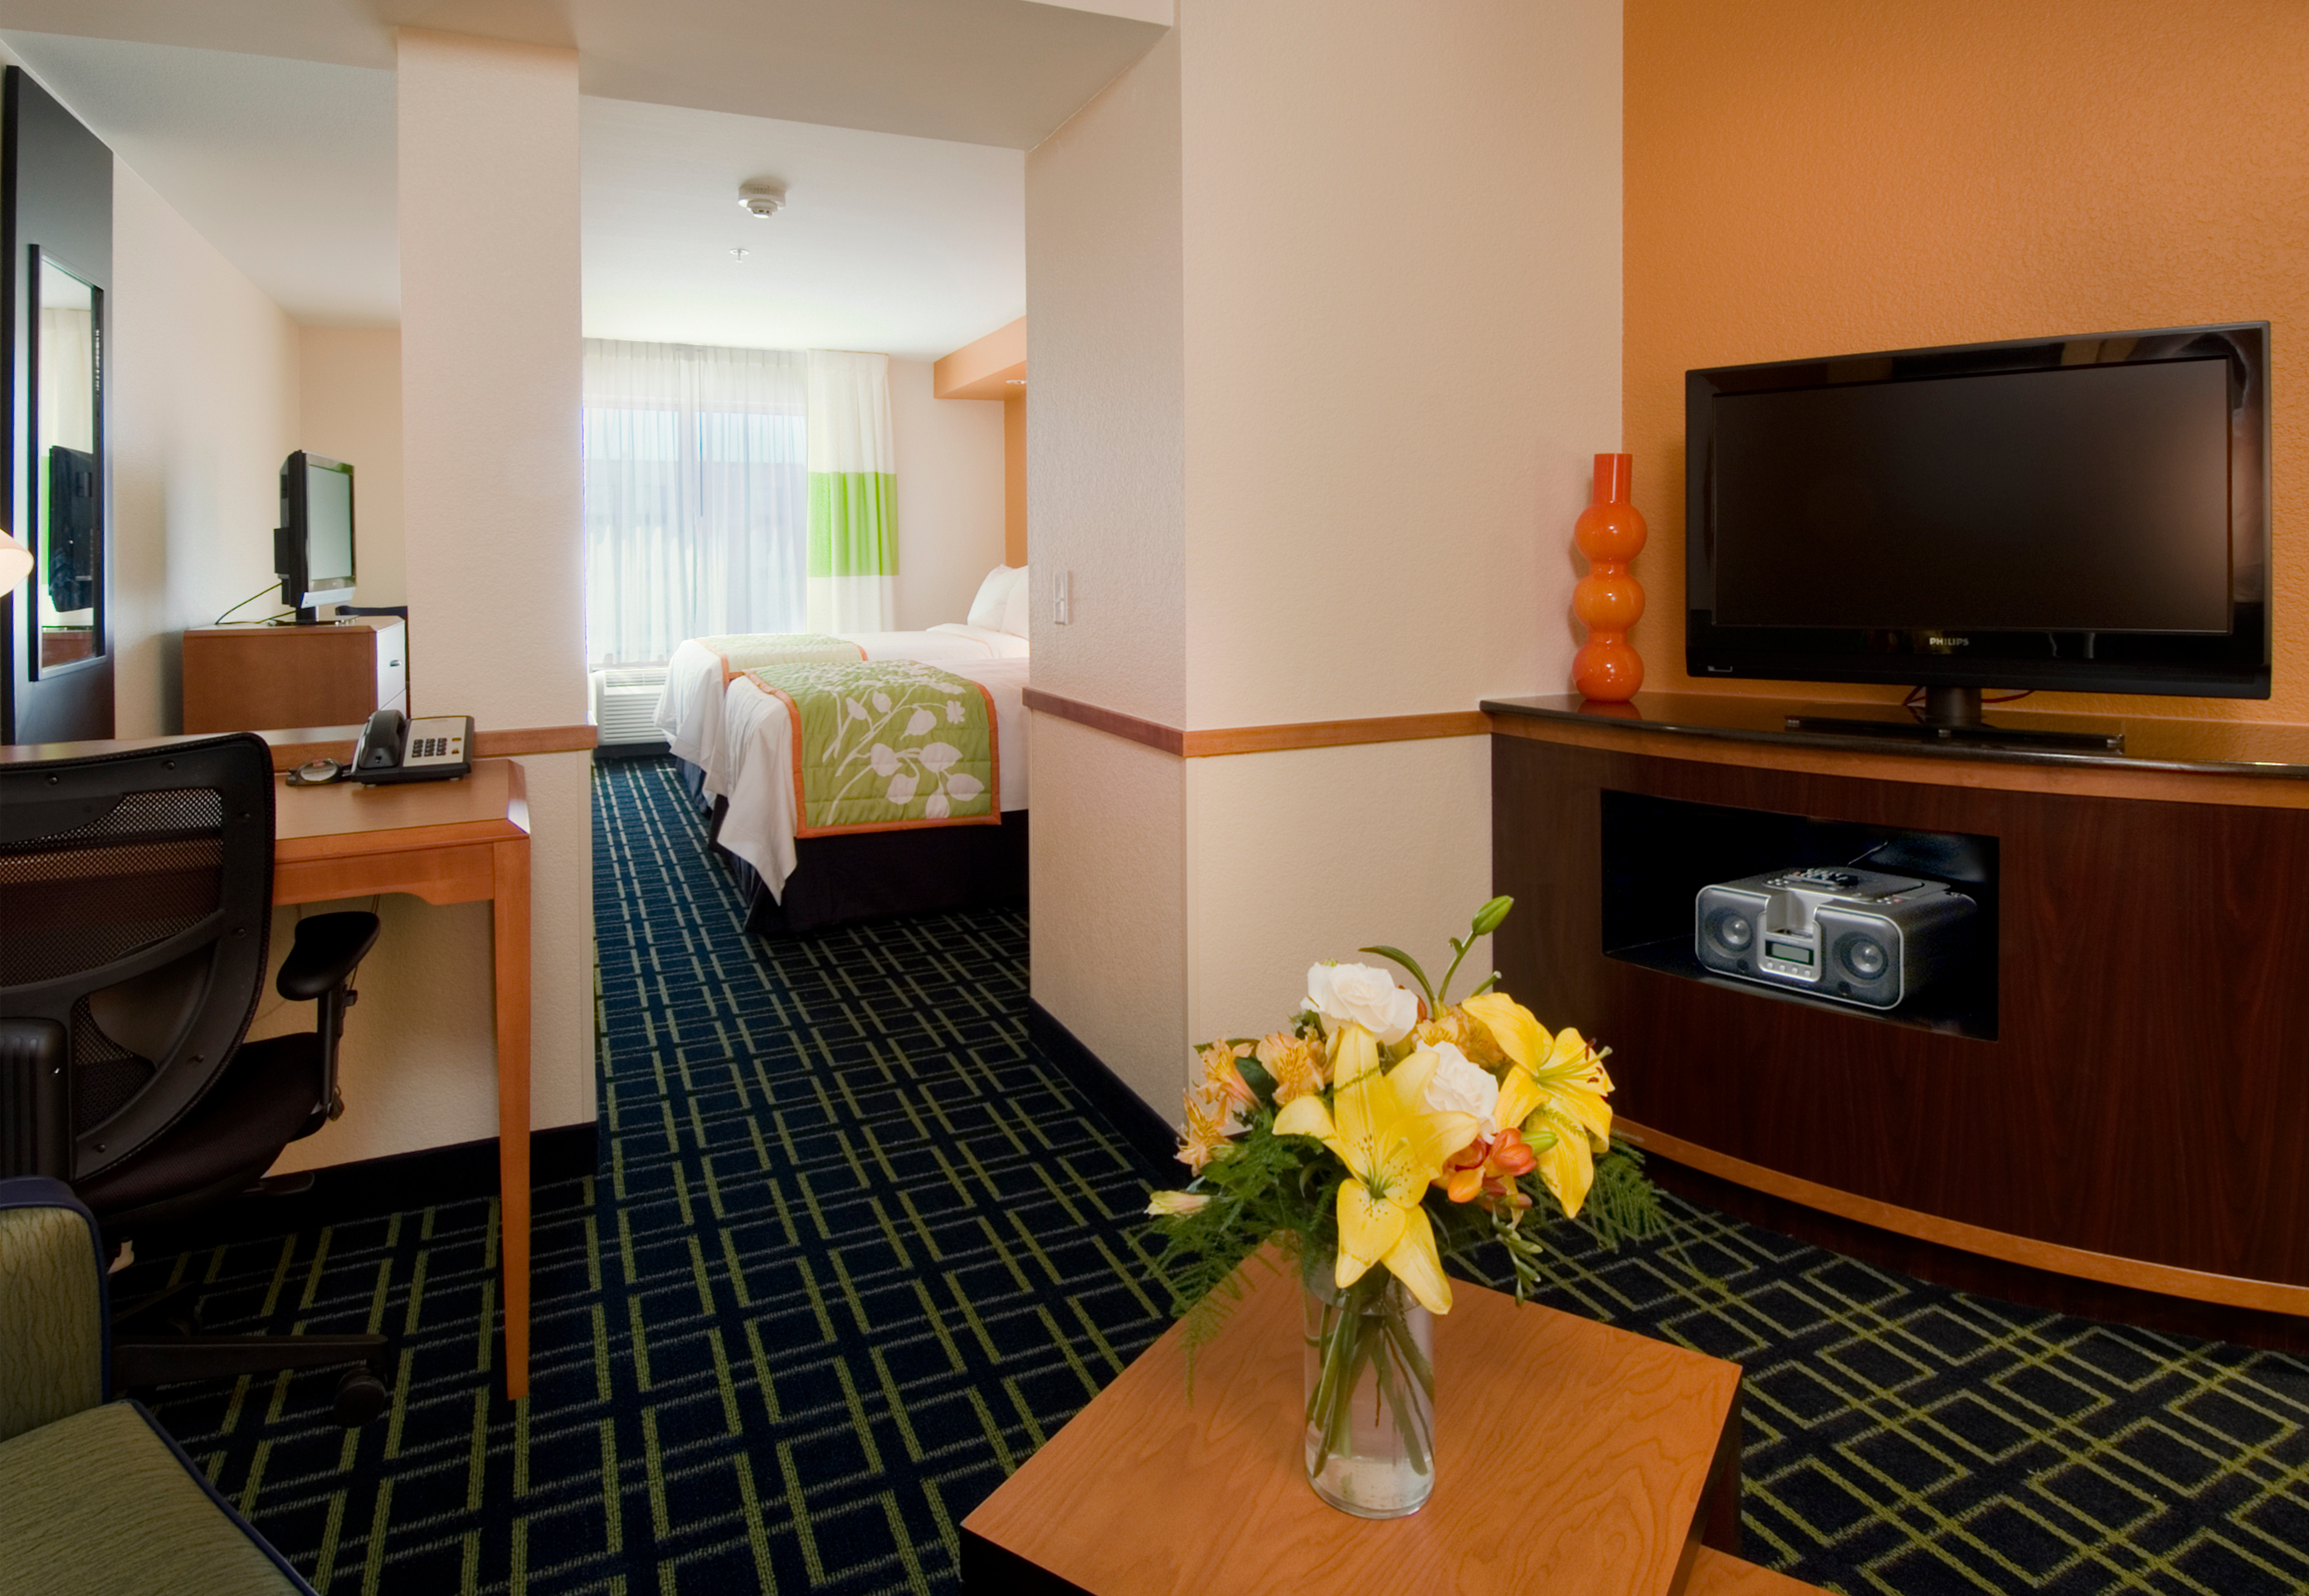 Fairfield Inn & Suites by Marriott Austin North/Parmer Lane image 3